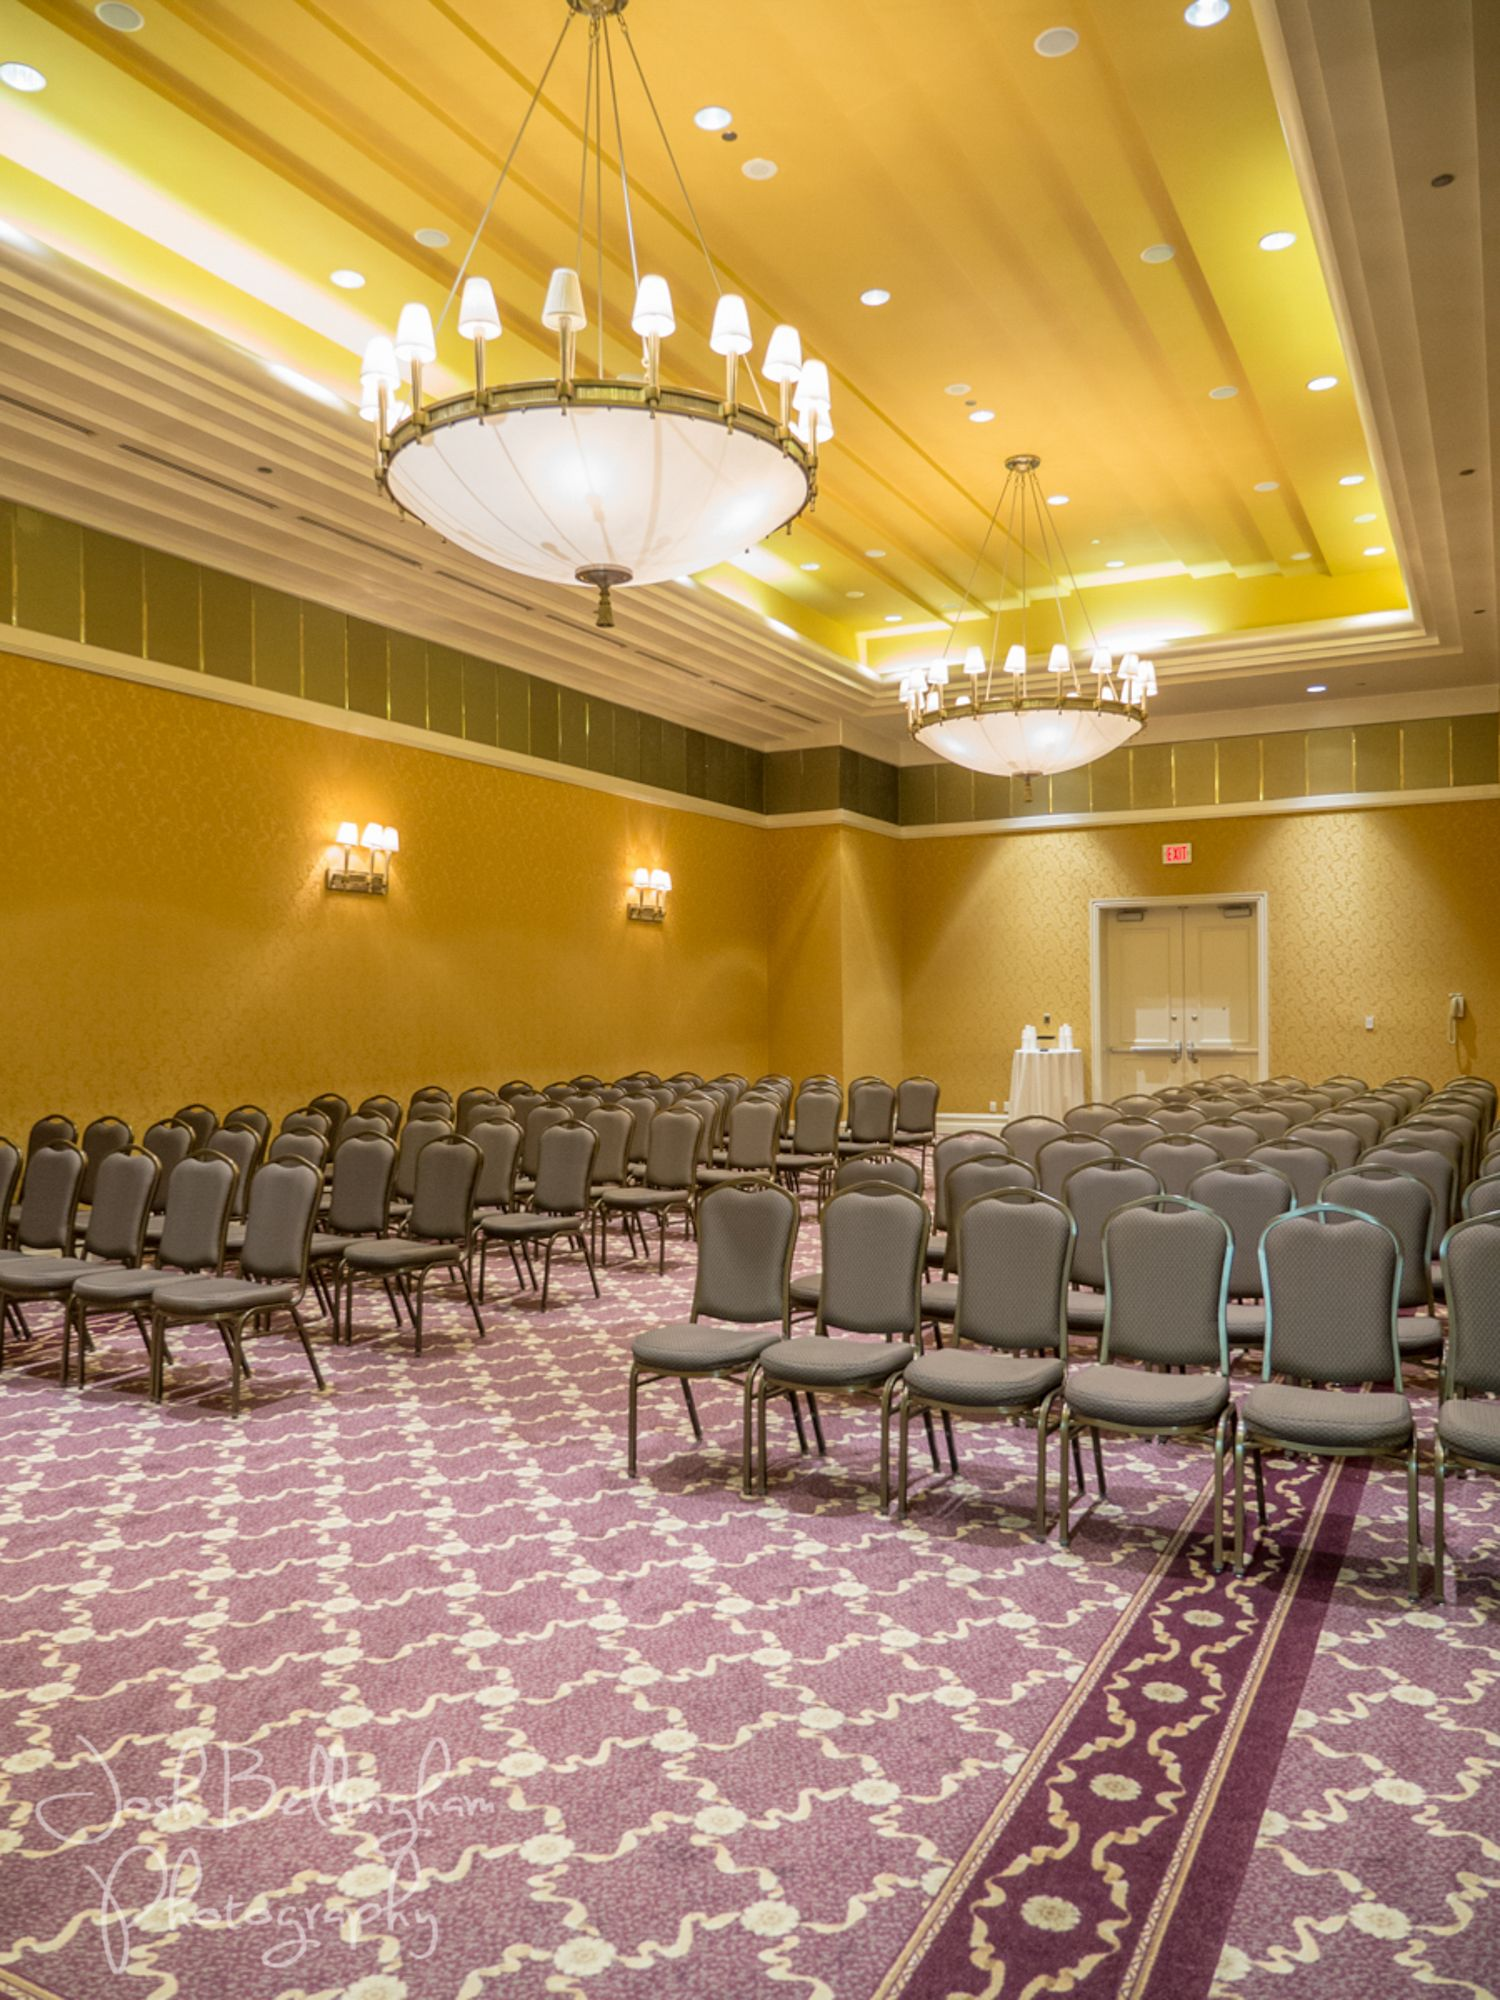 Preparation for a wedding in The Great Falls Ballroom in the Hilton ...